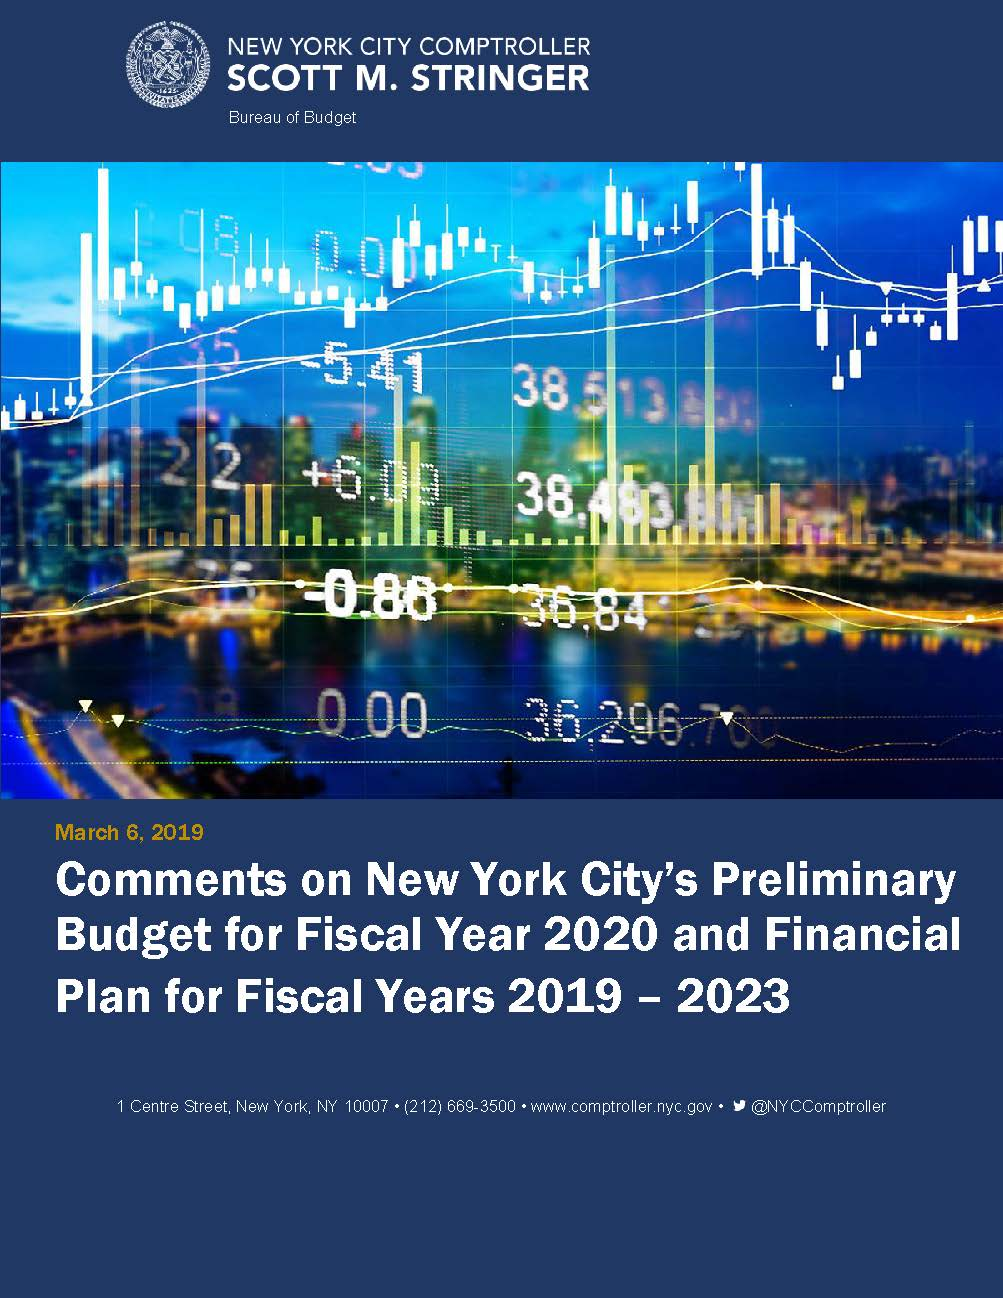 Comments on New York City's Preliminary Budget for Fiscal